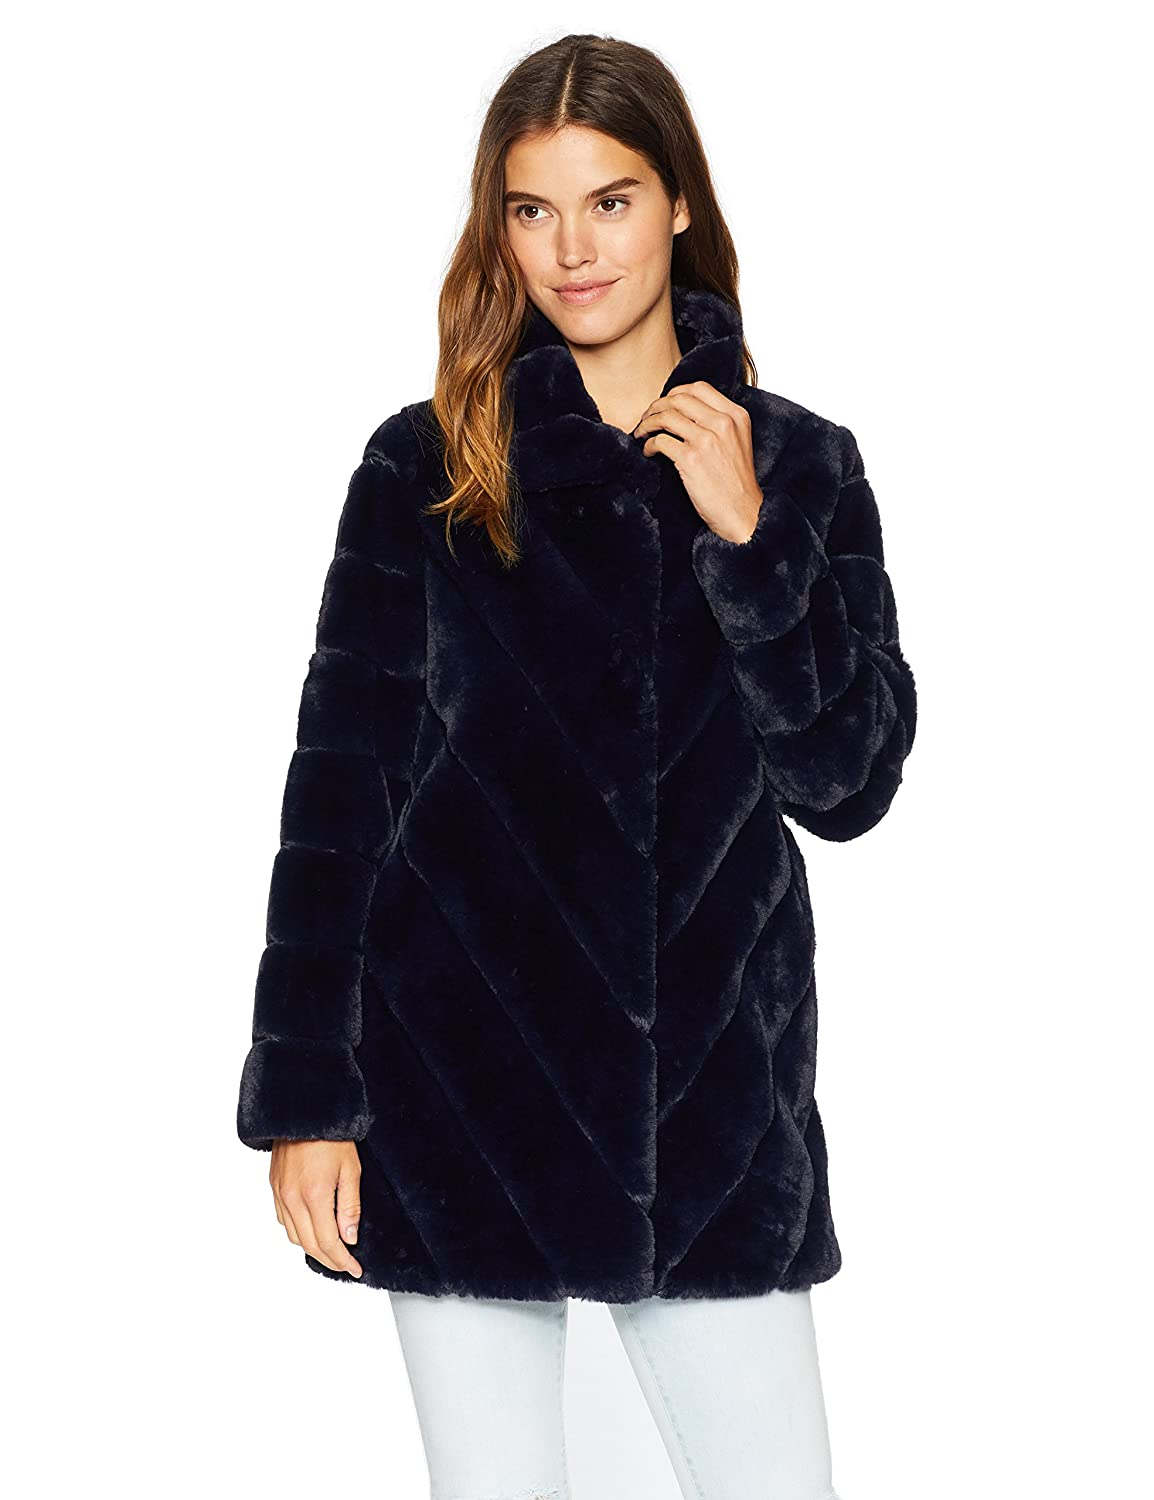 Nanette Lepore Women's Vegan Fur Coat